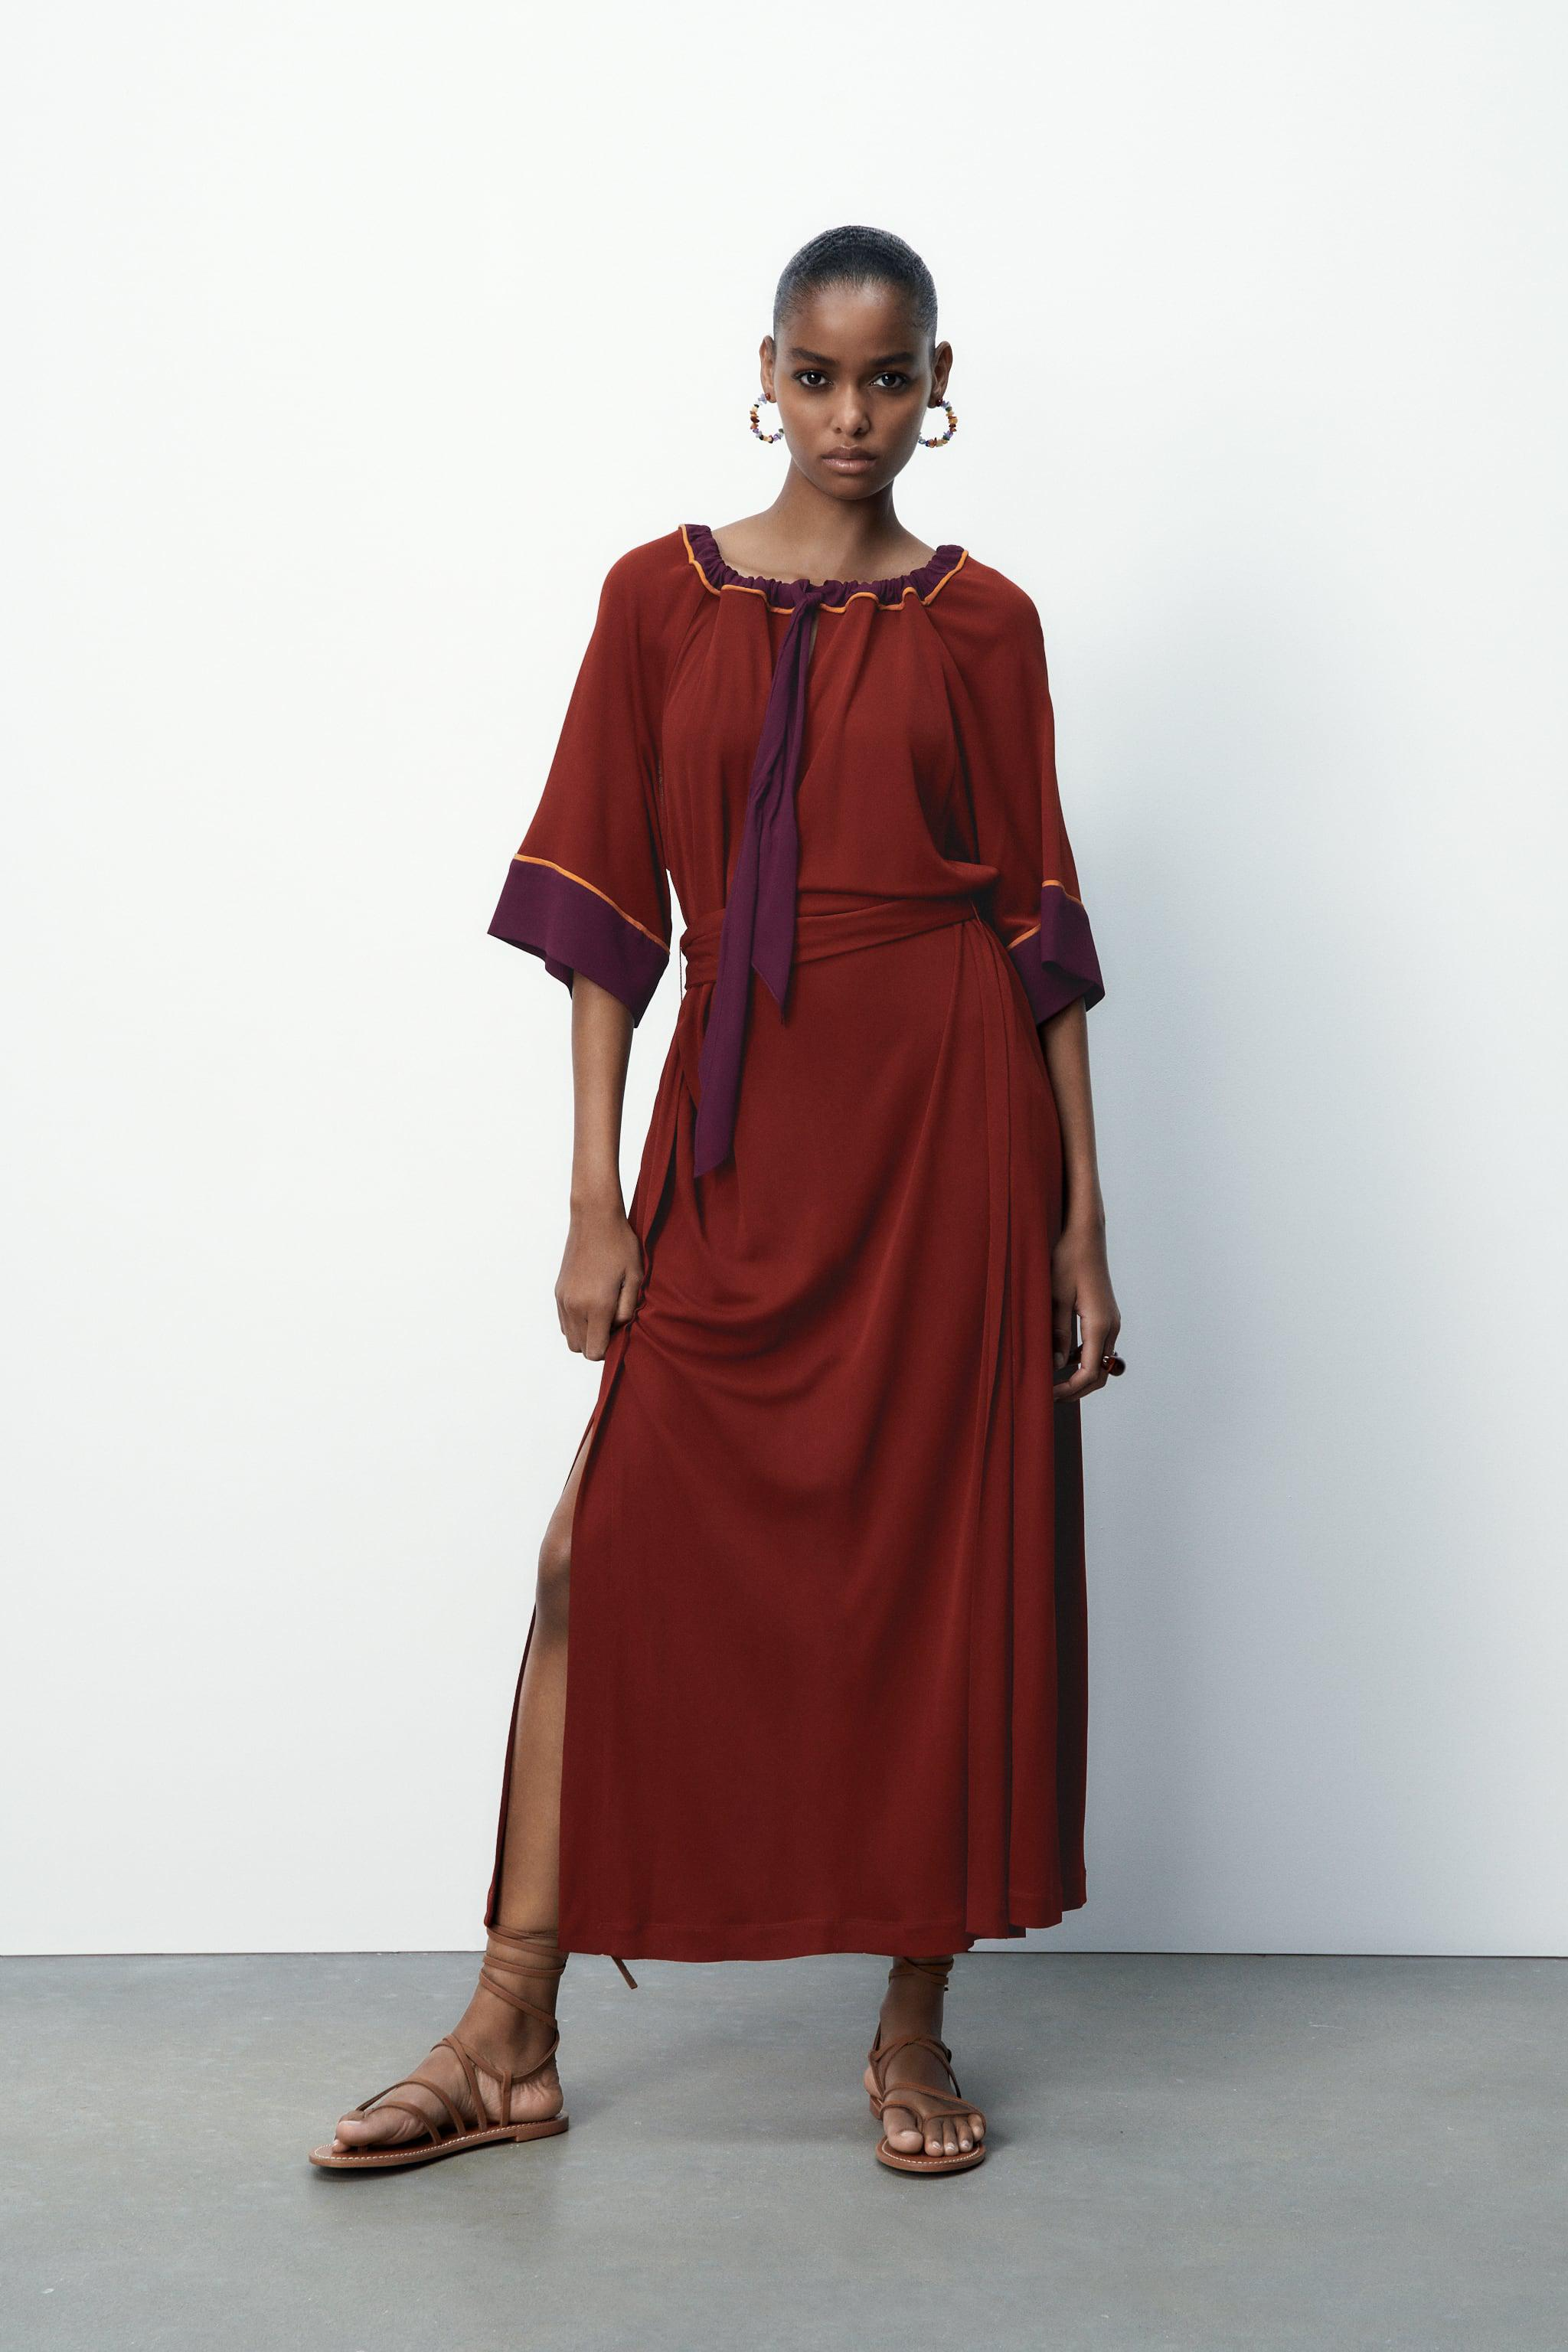 LIMITED EDITION CONTRASTING DRESS 1